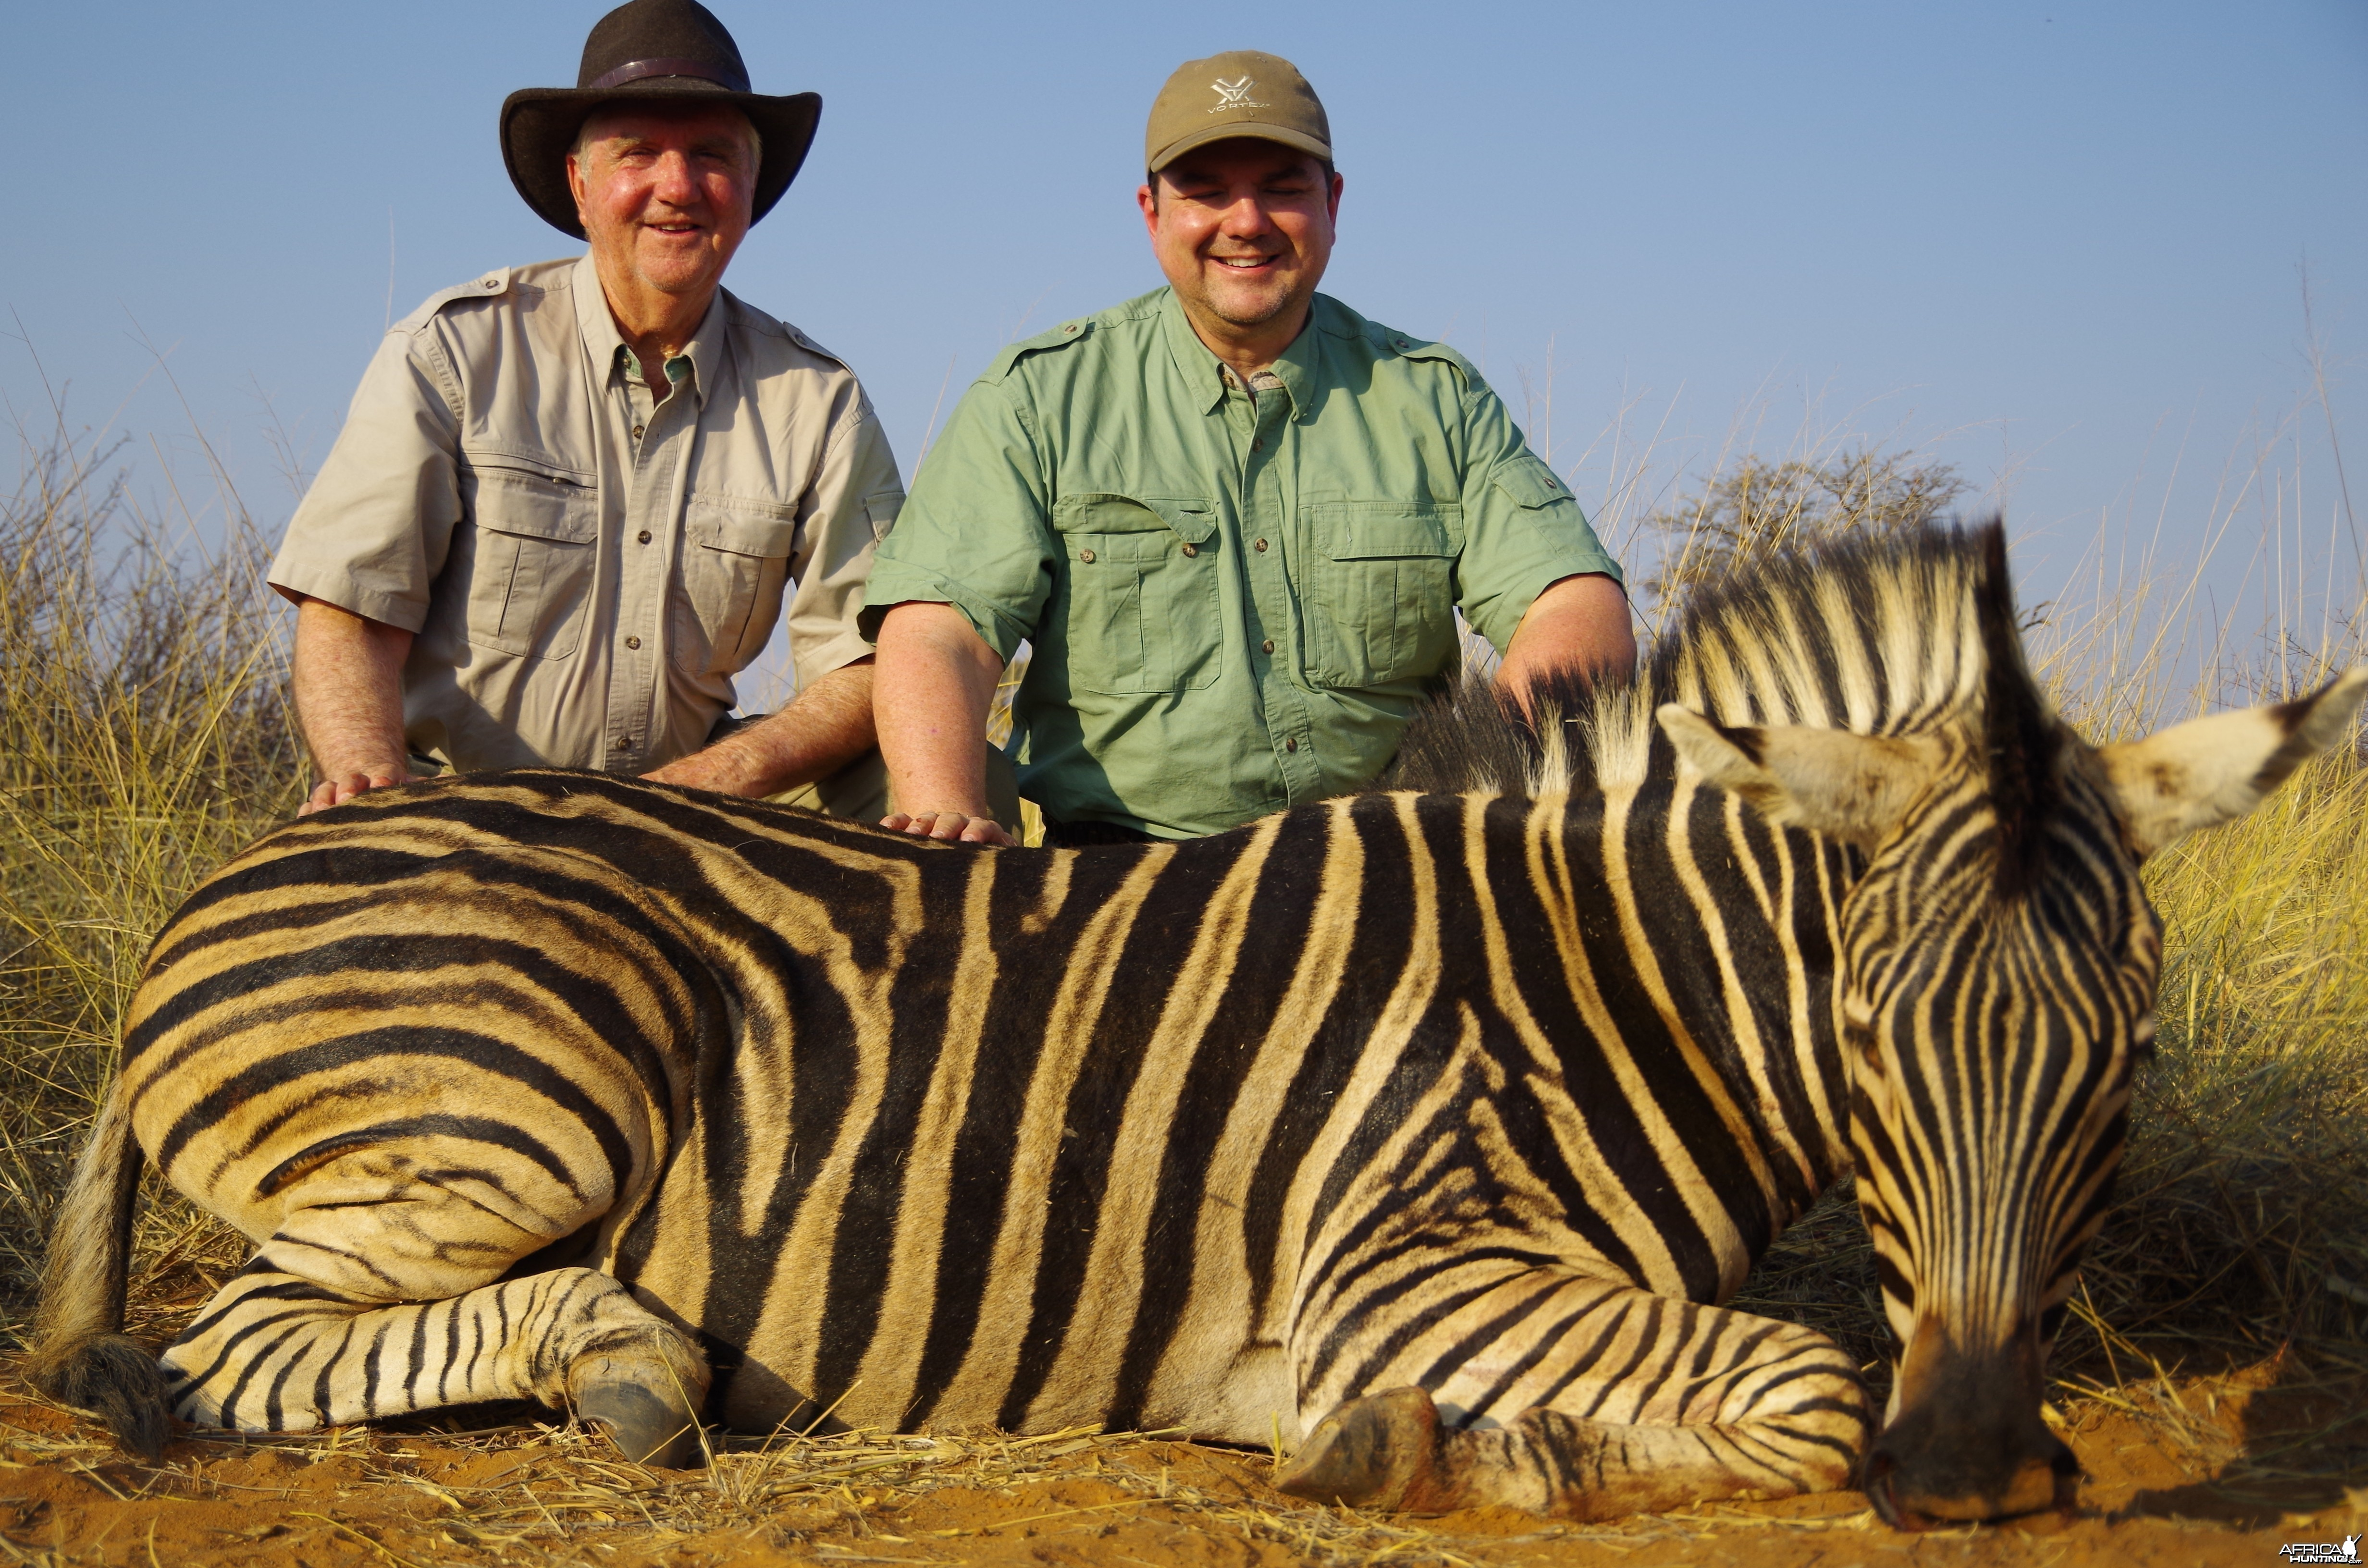 Great end to a very awesome Zebra stalk